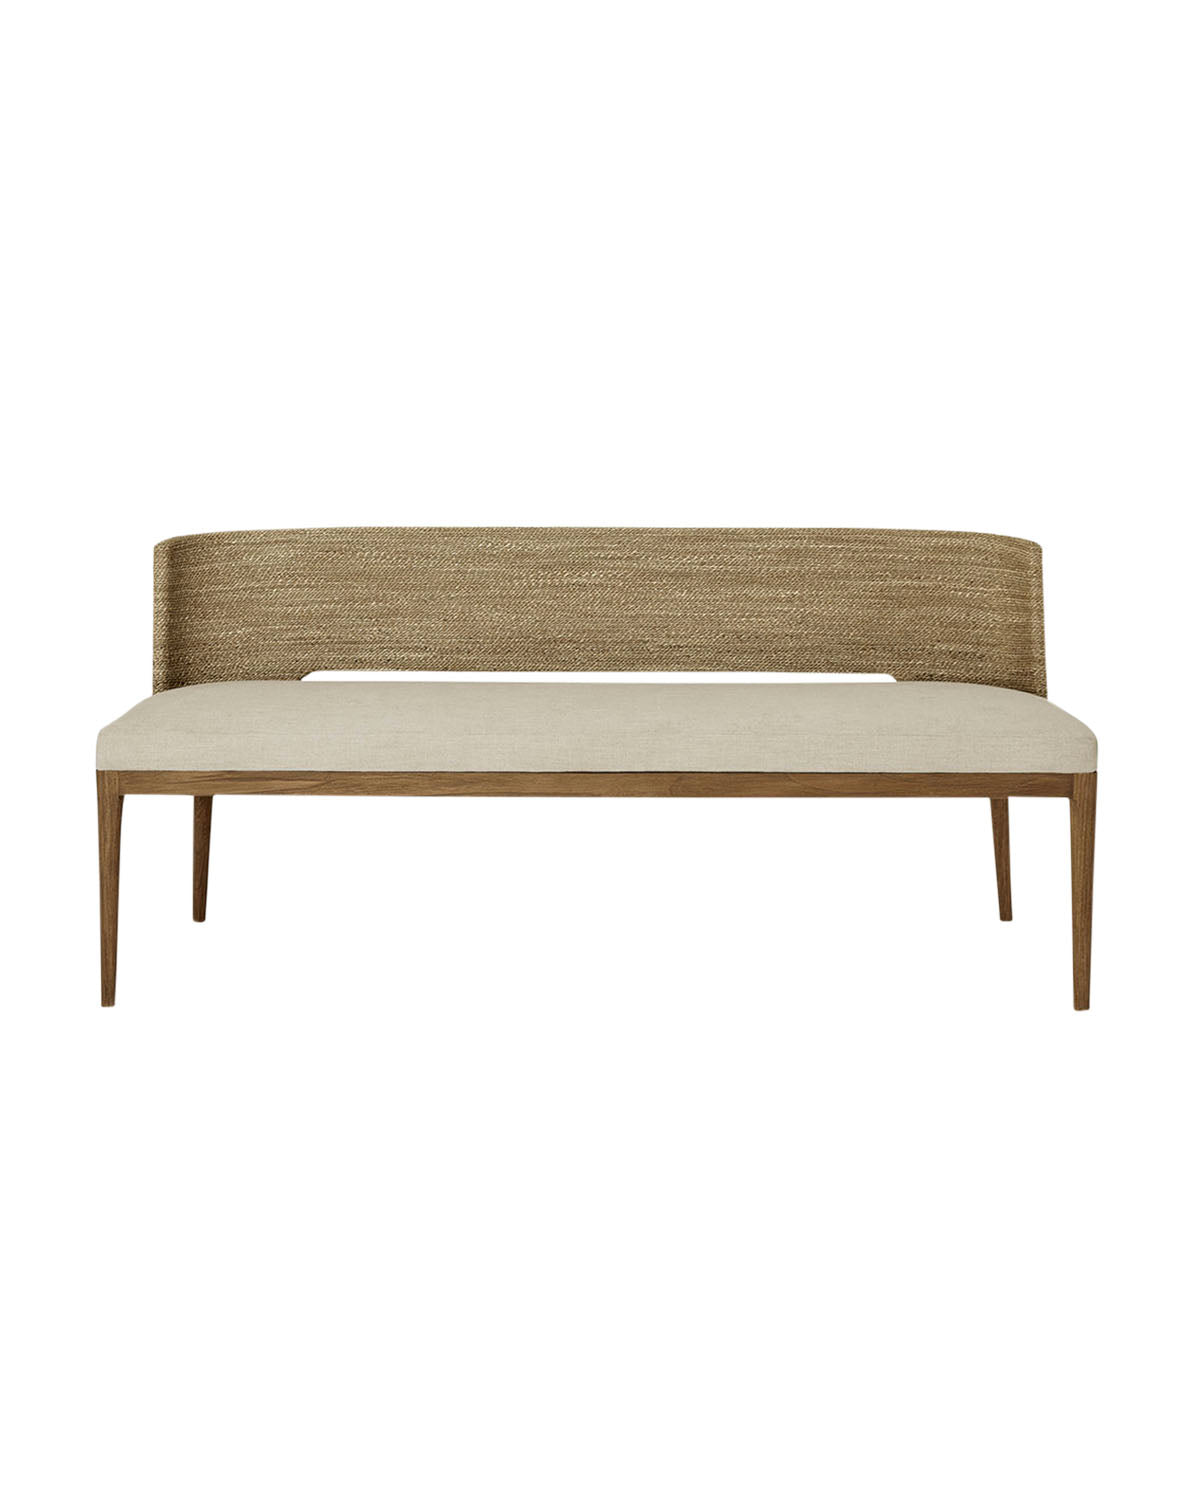 Ava Seagrass Bench